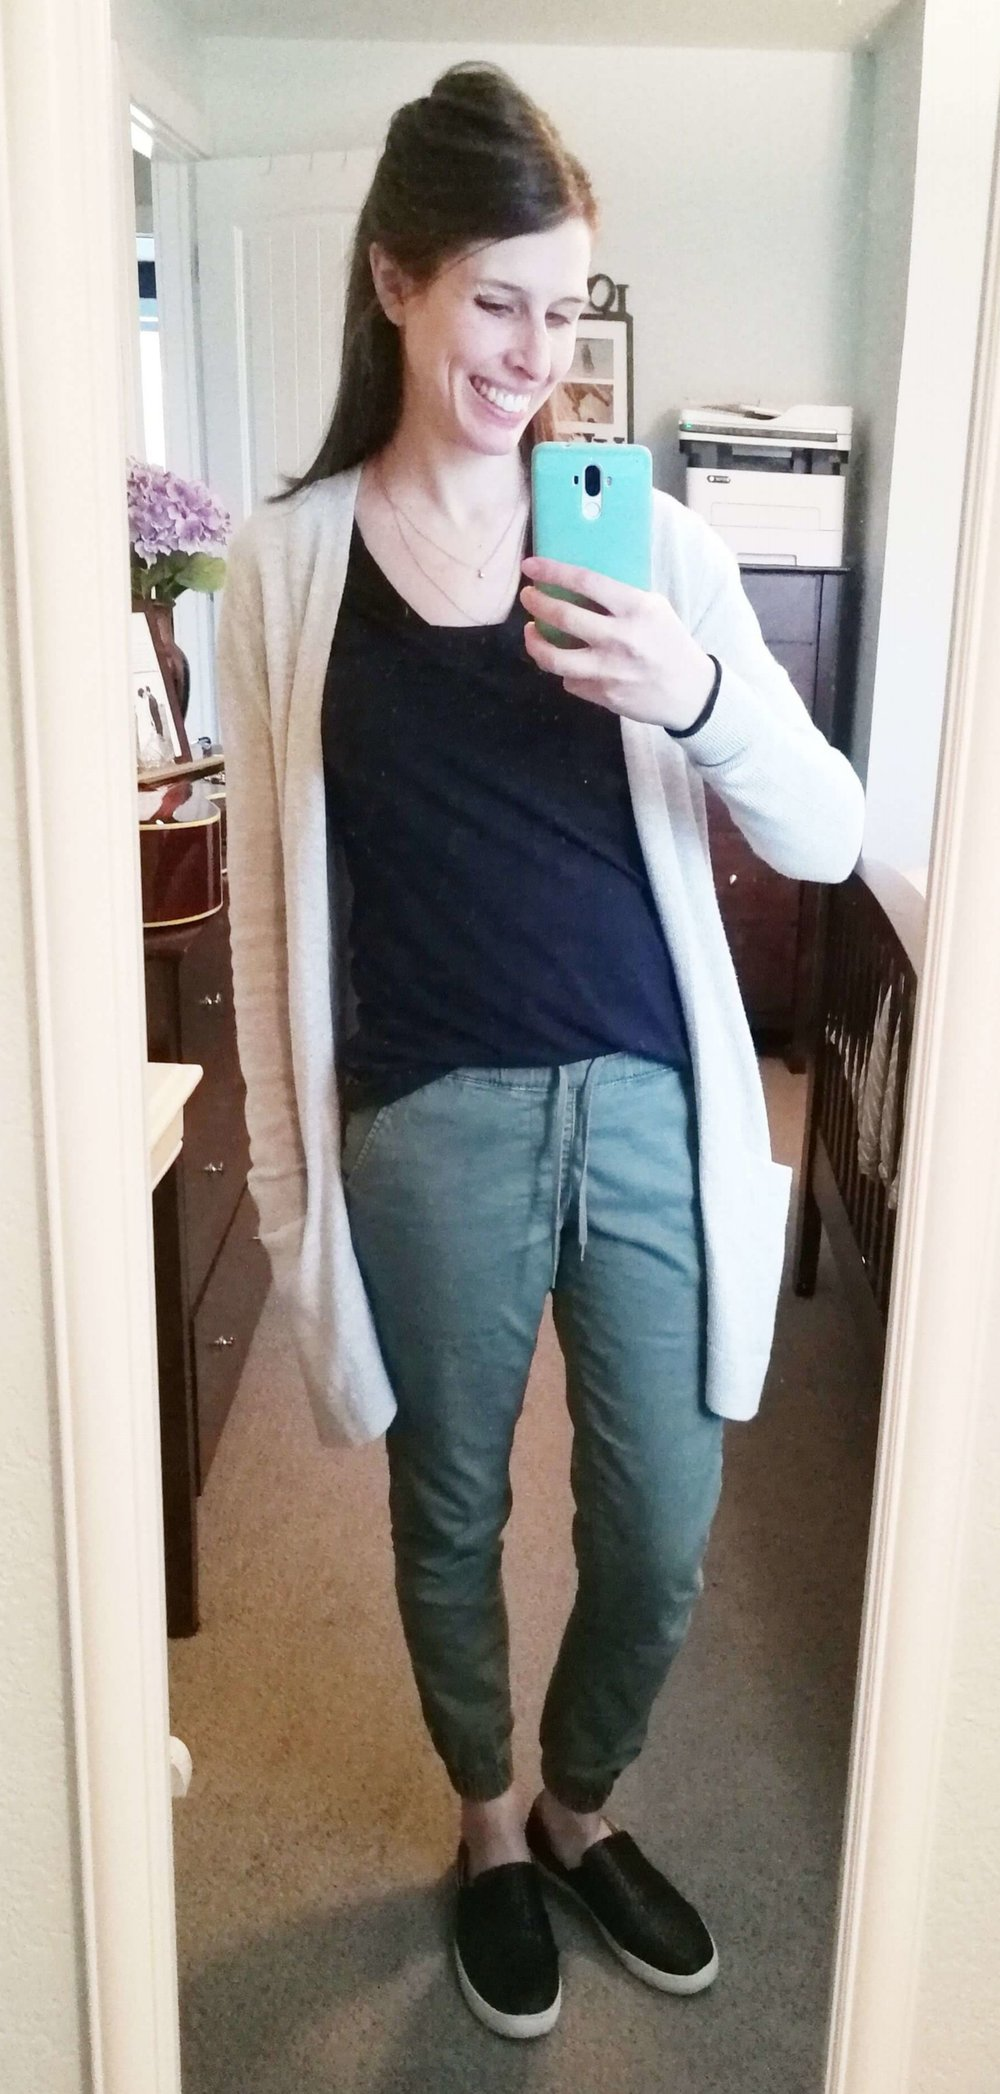 Joggers + Basic Tee + Neutral Boyfriend Cardigan + Slip Ons + Minimalist Necklace